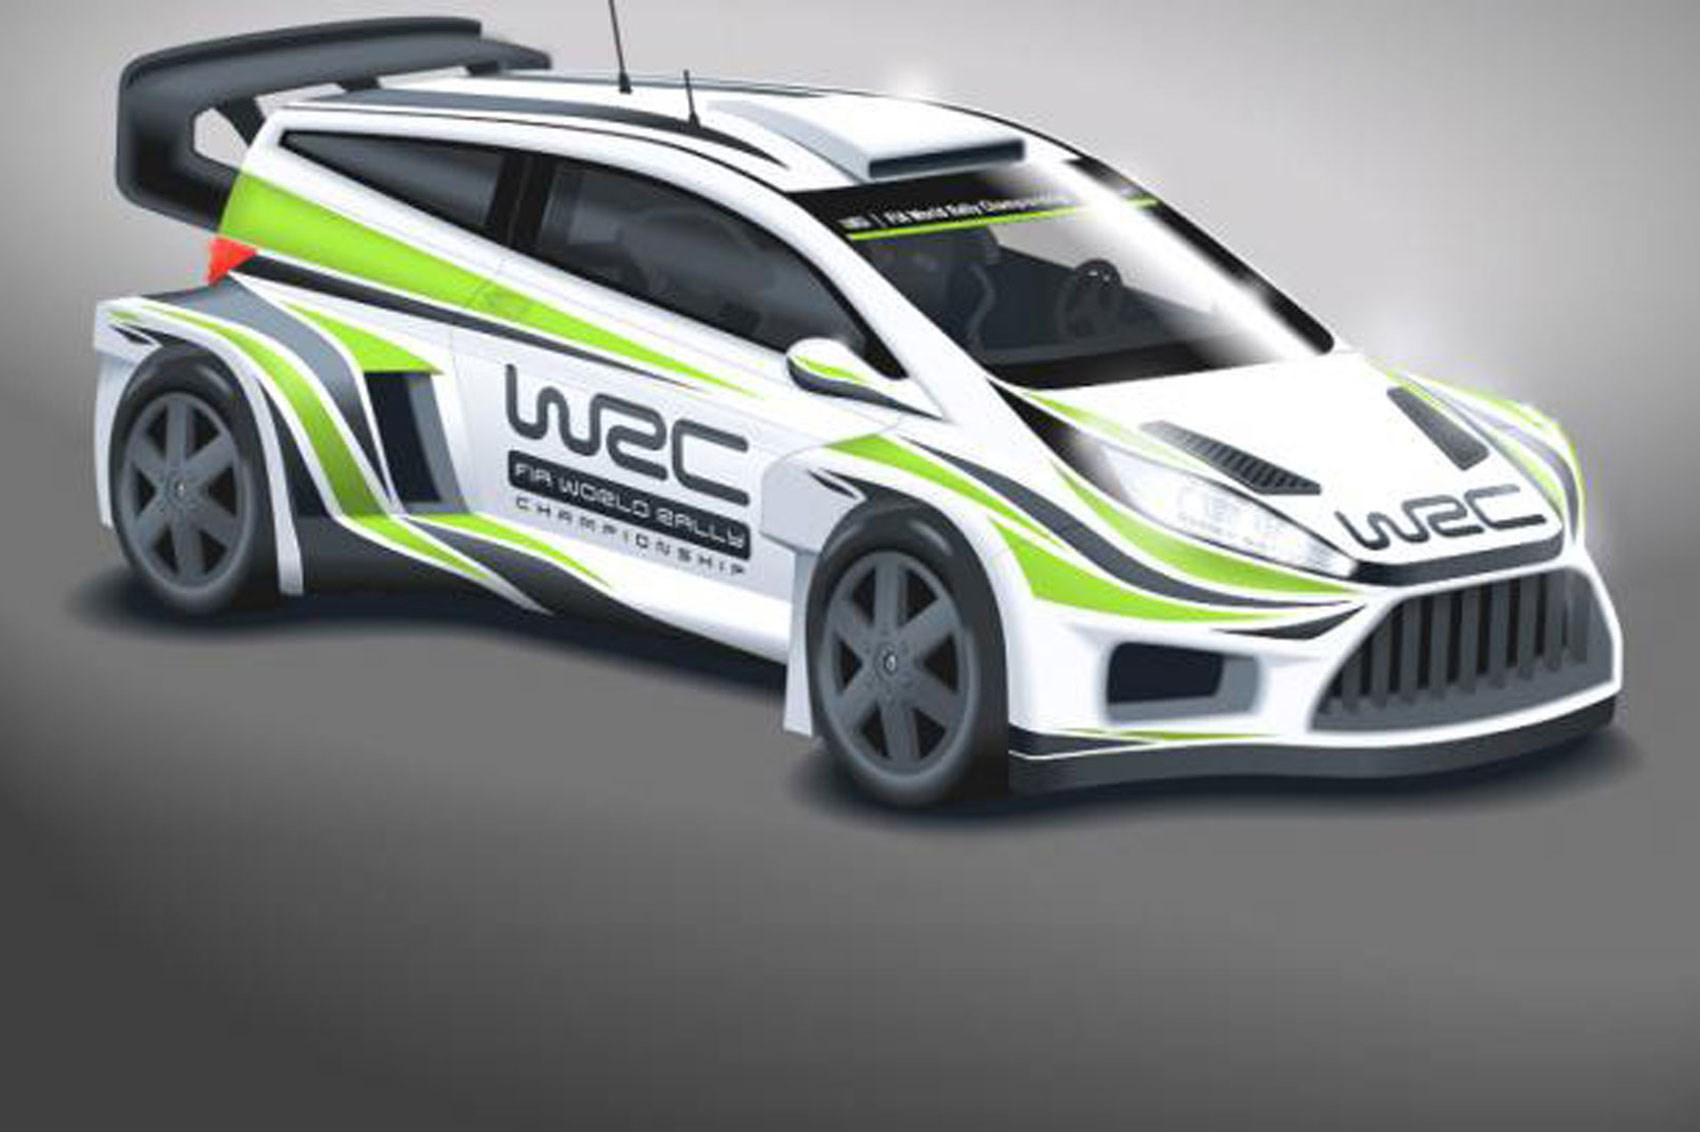 Ultrablogus  Marvelous Wild New Look For Wrc Cars In  By Car Magazine With Interesting Wrc Cars Will Get Wider Bodies Bigger Wings And More Power For  With Nice  Bmw I Interior Also Nissan Hardbody Interior Parts In Addition Fiat  Interior And Bmw I  Interior As Well As  Toyota Runner Interior Additionally  Nissan Zx Interior From Carmagazinecouk With Ultrablogus  Interesting Wild New Look For Wrc Cars In  By Car Magazine With Nice Wrc Cars Will Get Wider Bodies Bigger Wings And More Power For  And Marvelous  Bmw I Interior Also Nissan Hardbody Interior Parts In Addition Fiat  Interior From Carmagazinecouk